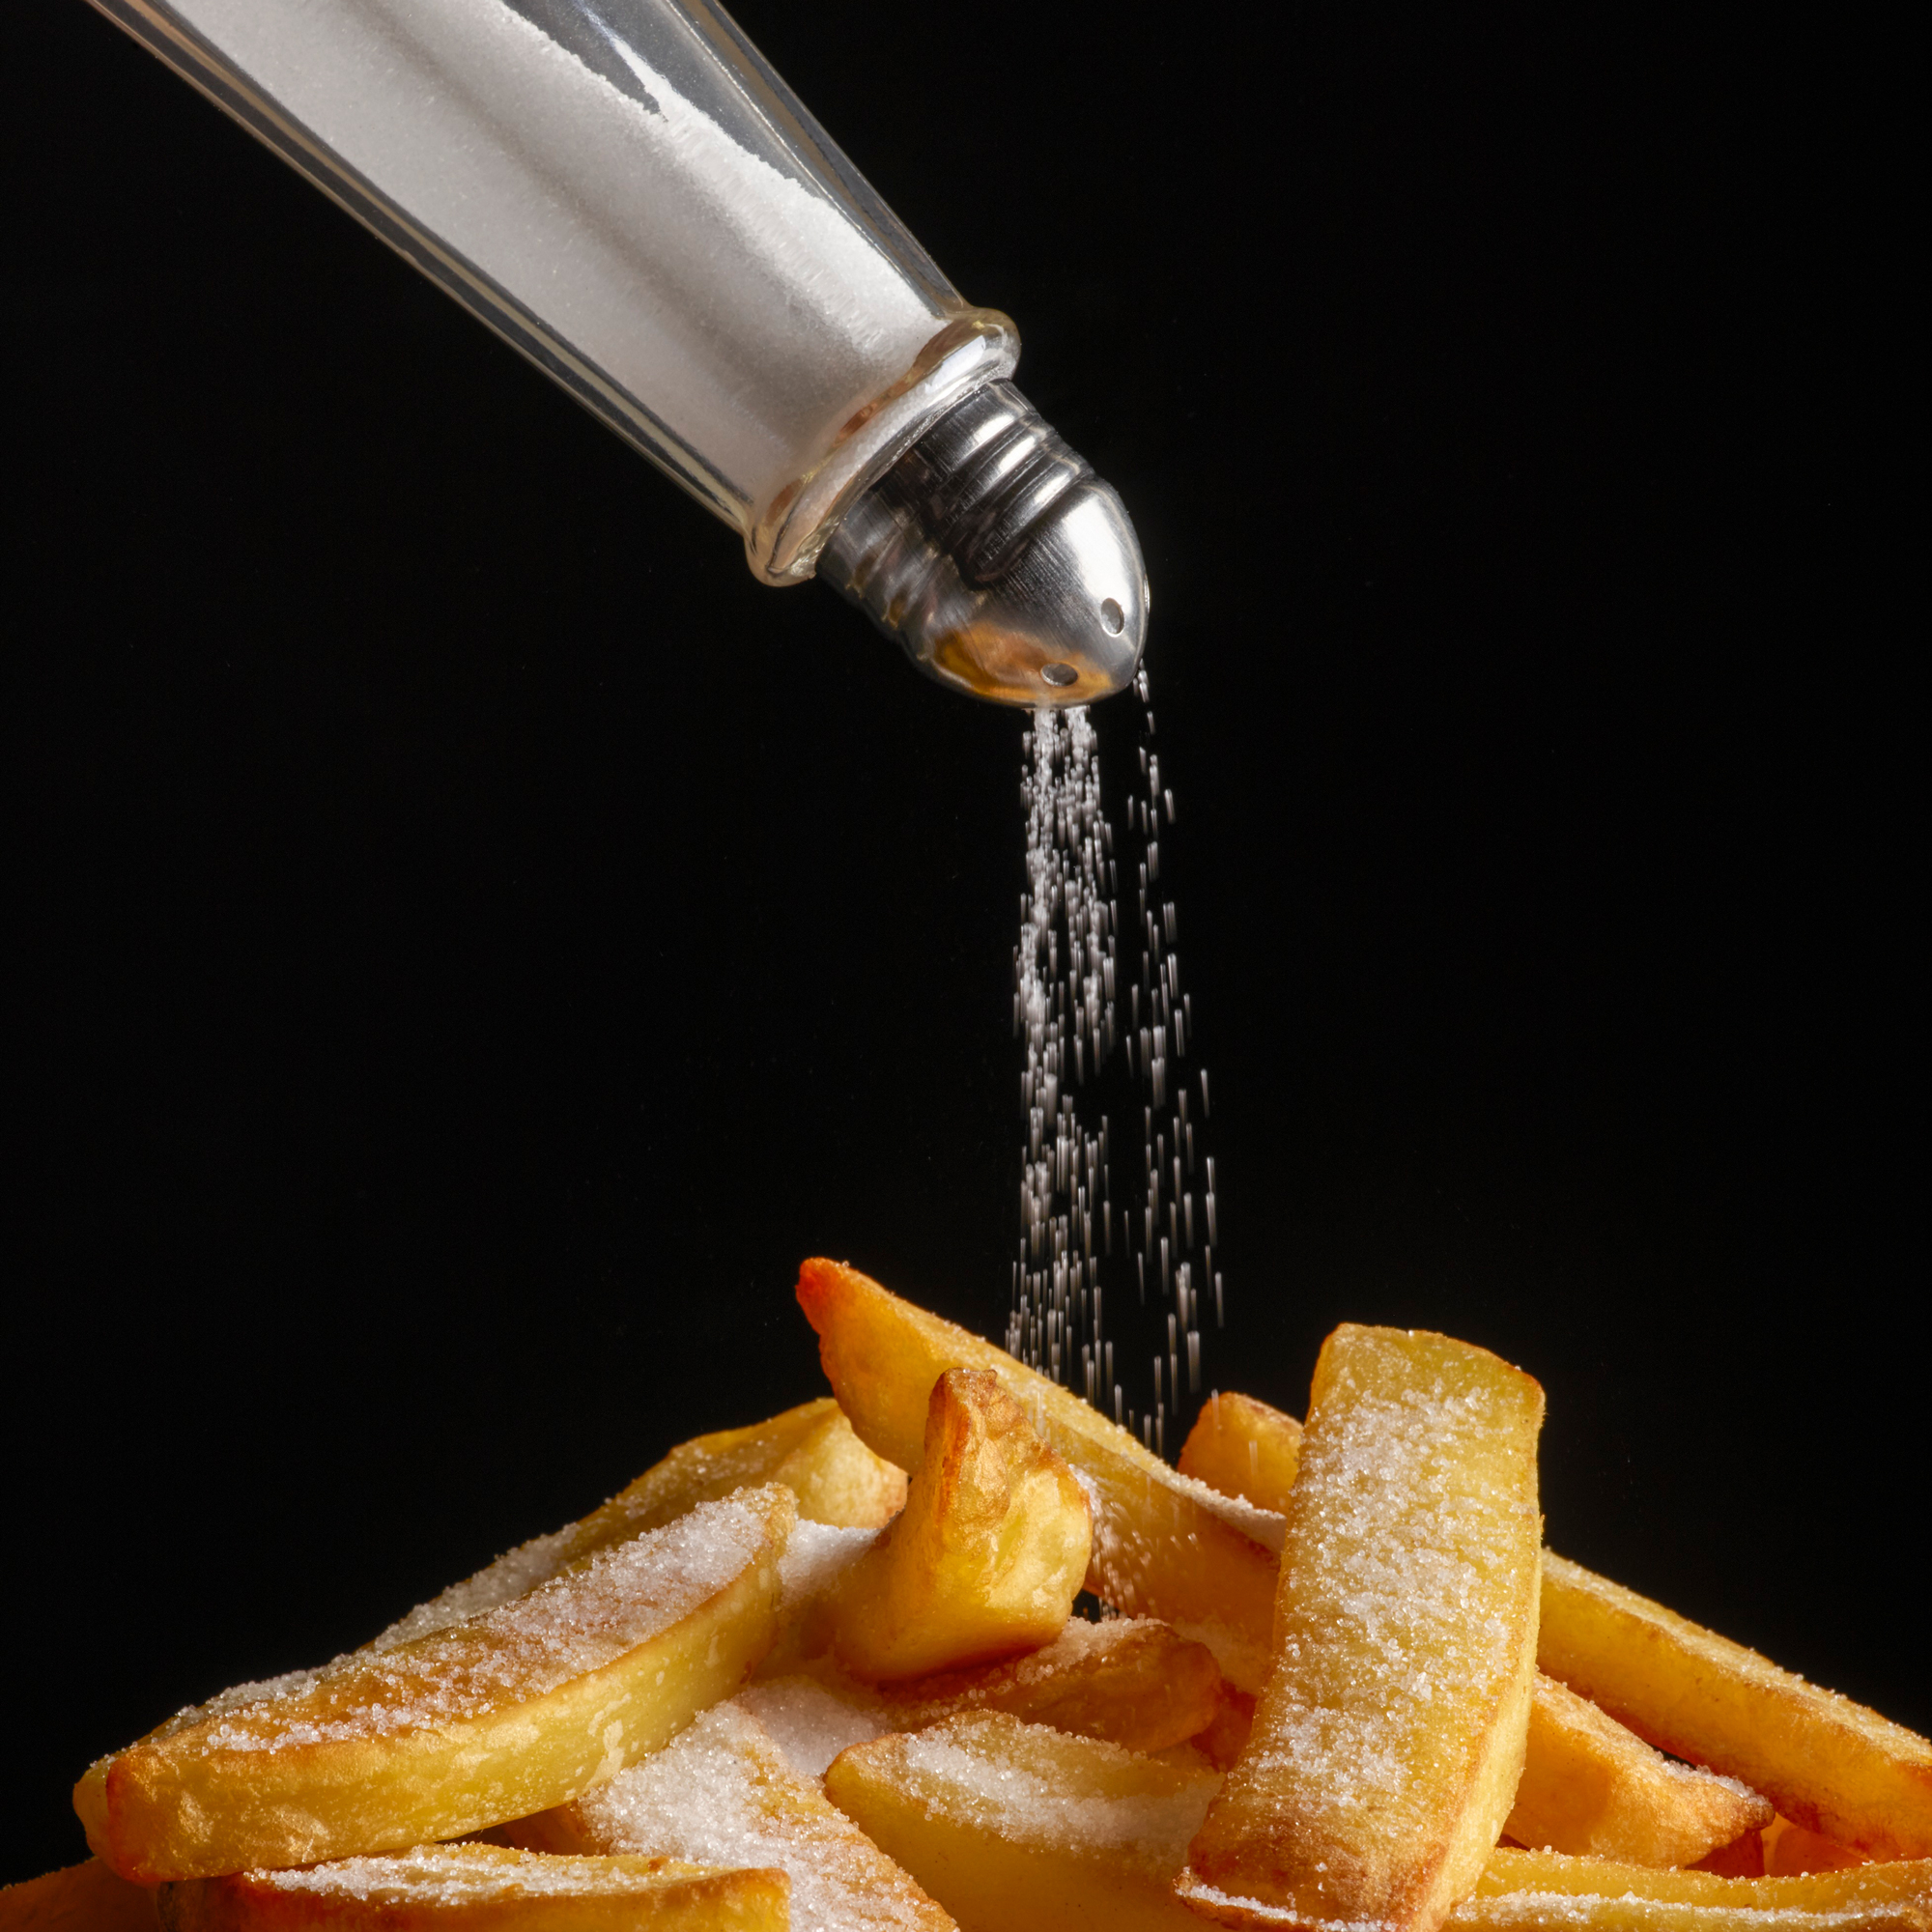 pouring salt onto French fries